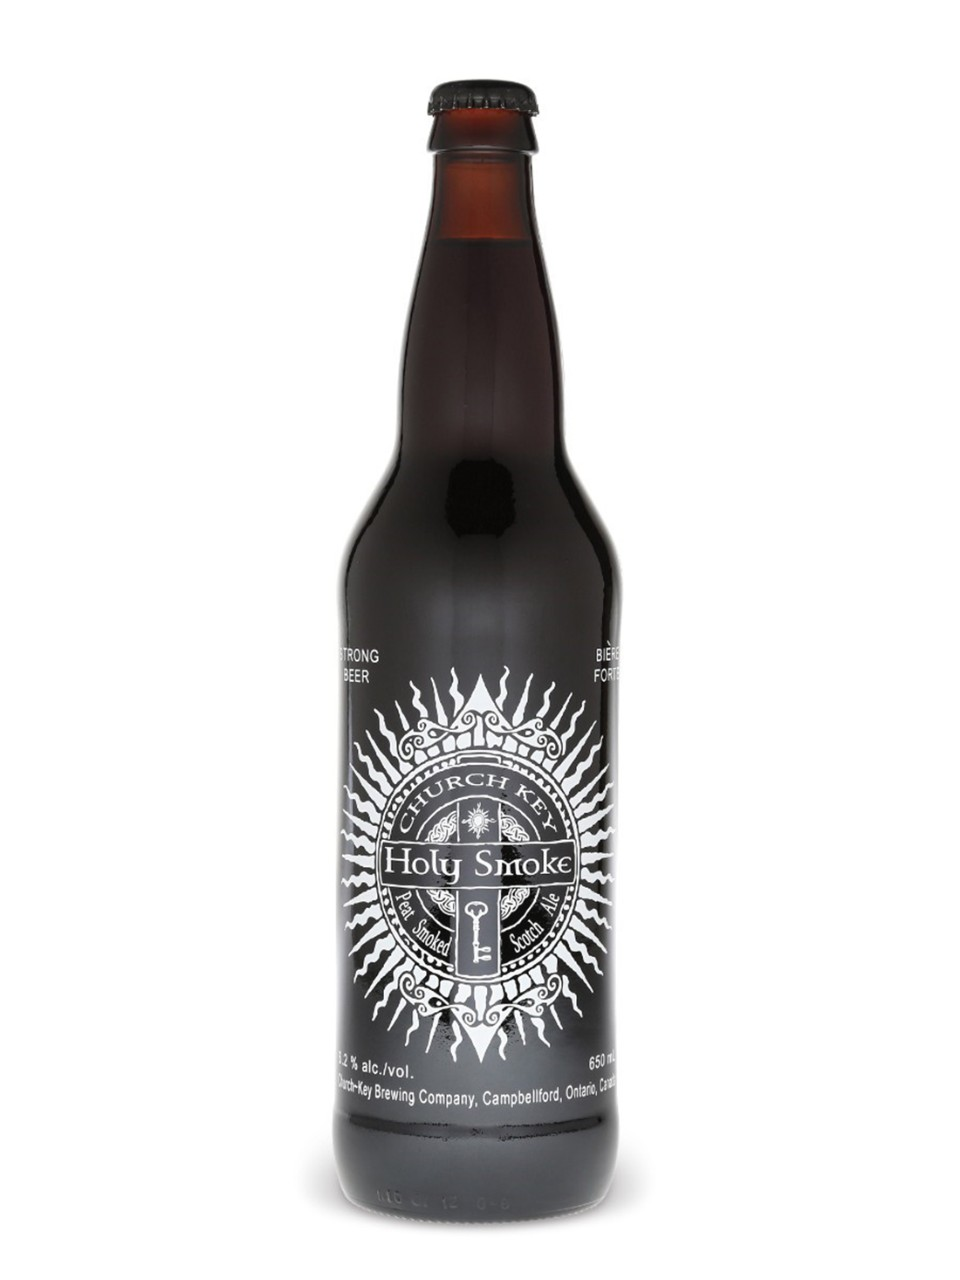 Church Key Holy Smoke Scotch Ale